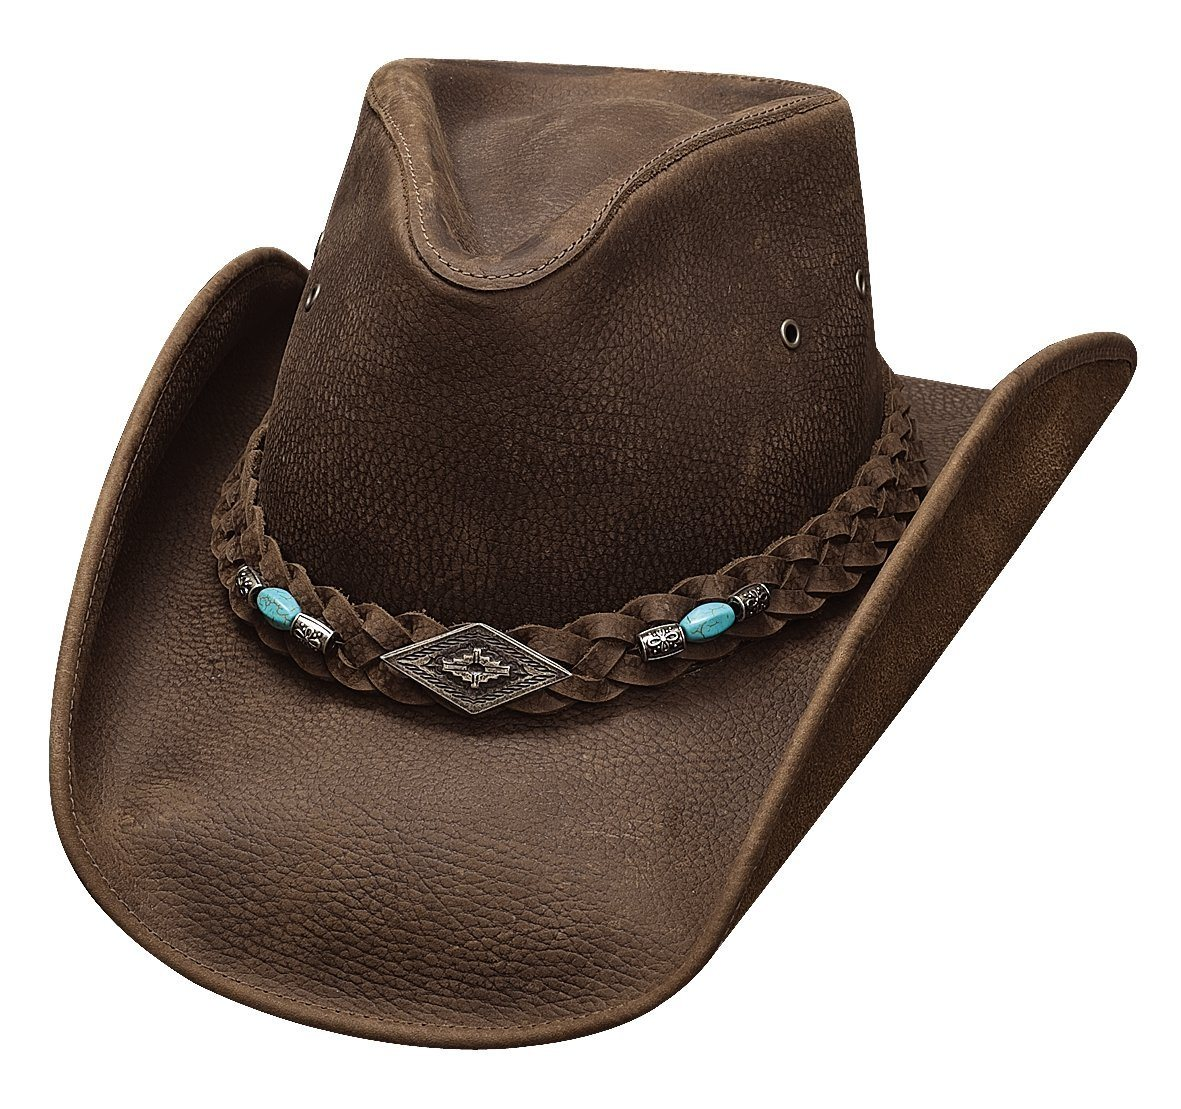 Bullhide Hats Royston – Brown Cowboy/girl Hat ACC.HAT LEATHER BULLHIDE HAT CO.